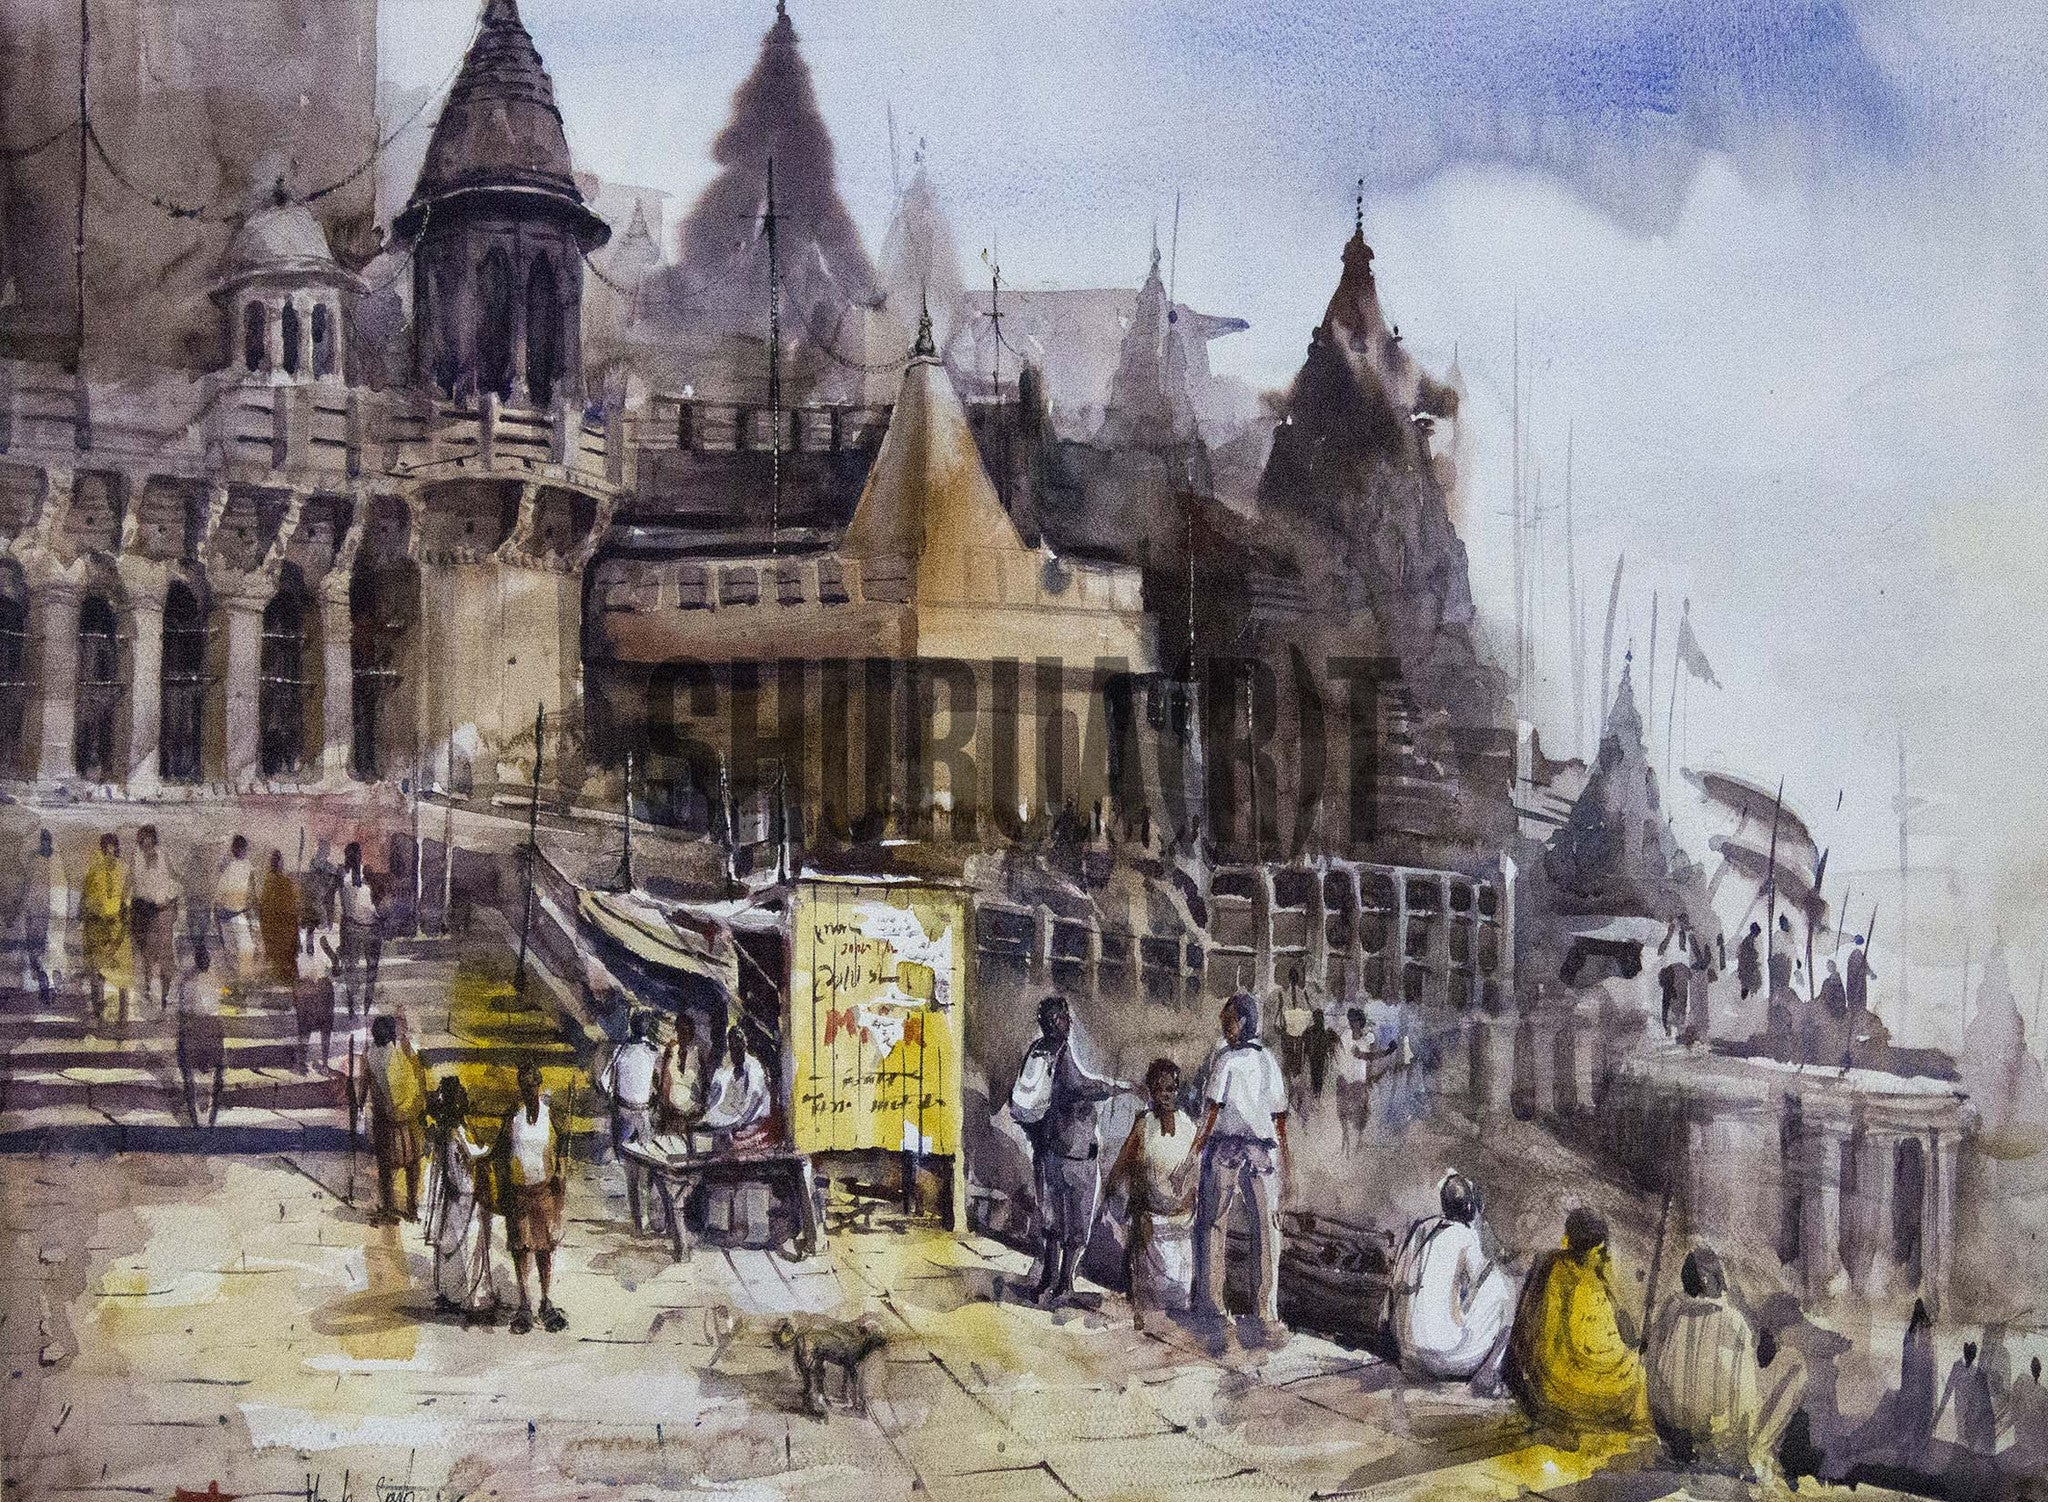 A beautiful painting of a ghat in Banaras